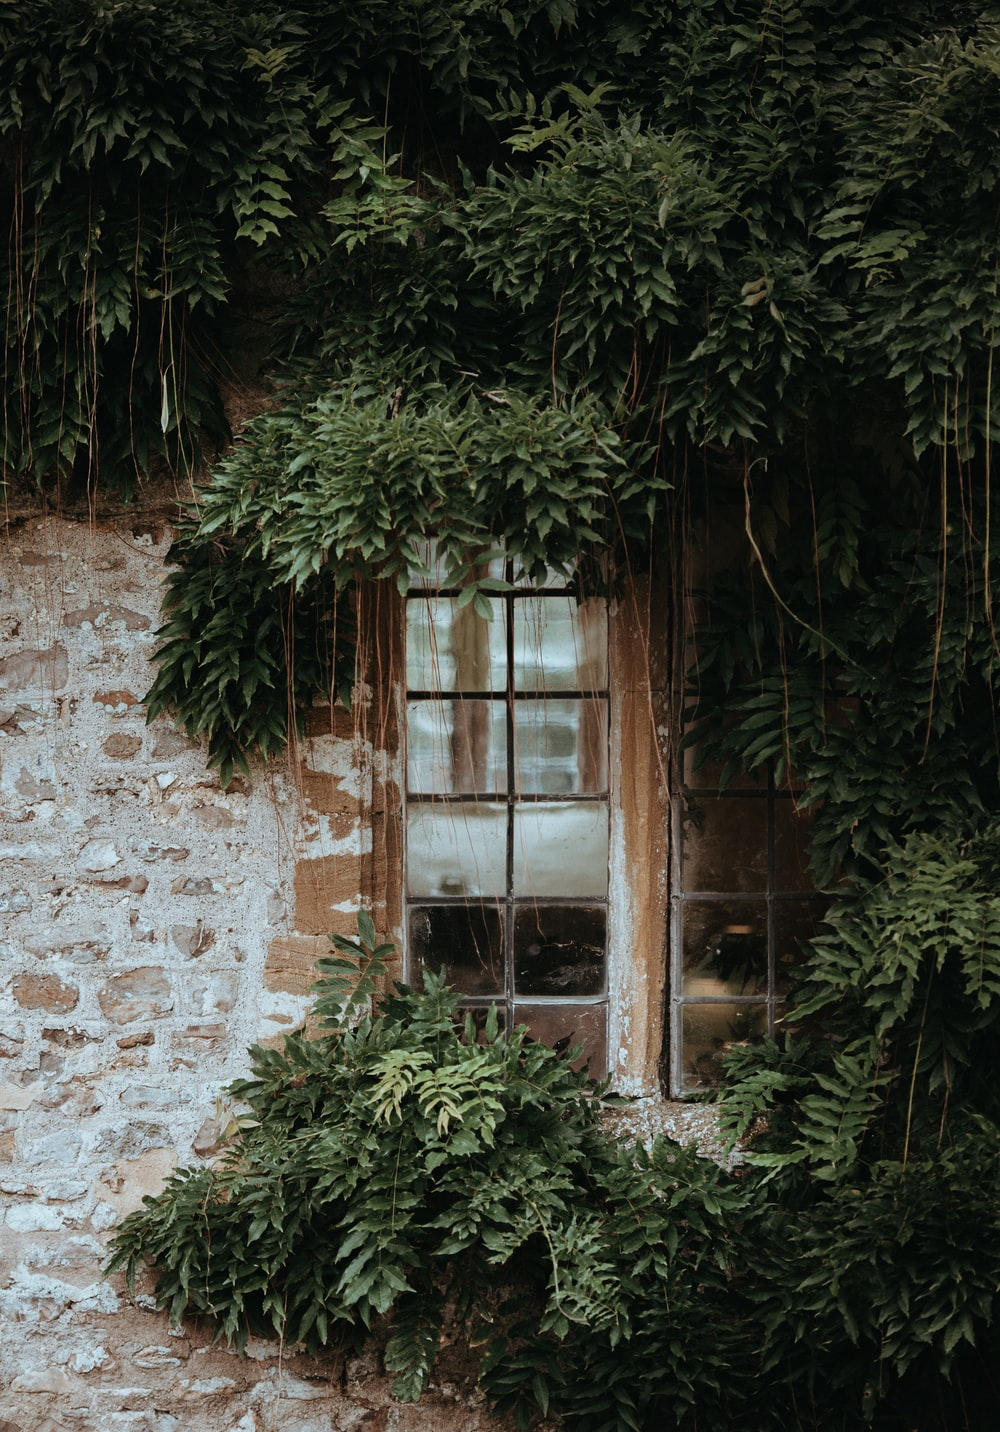 brown window covered by green leafed plant